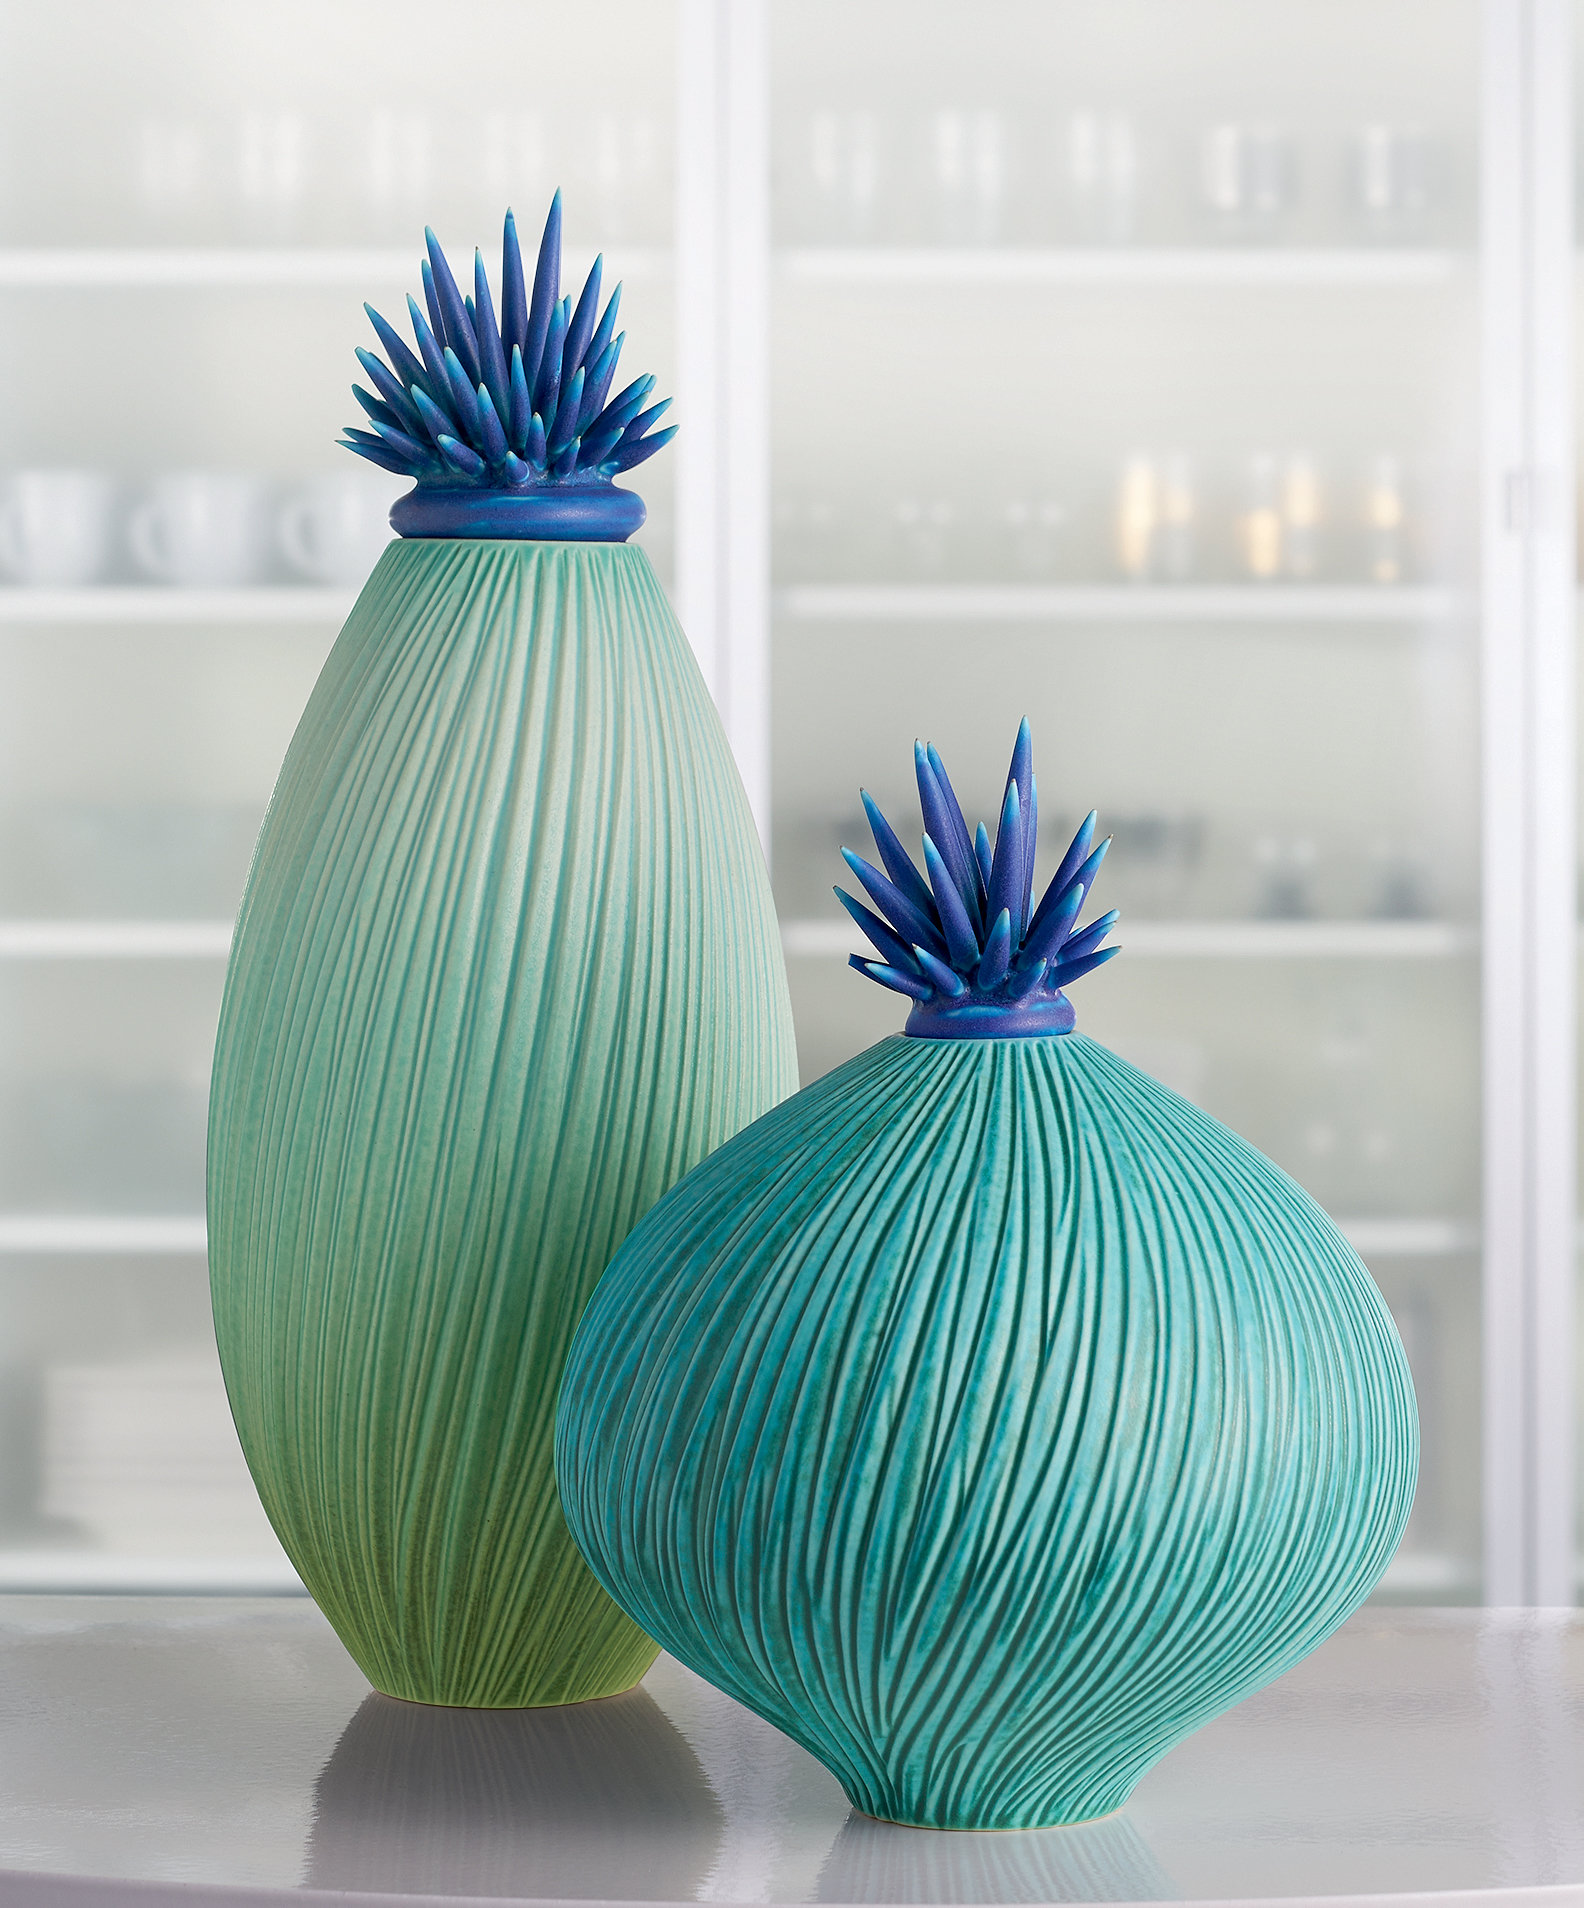 Ocean Wave Vessels With Urchin Lids By Natalie Blake